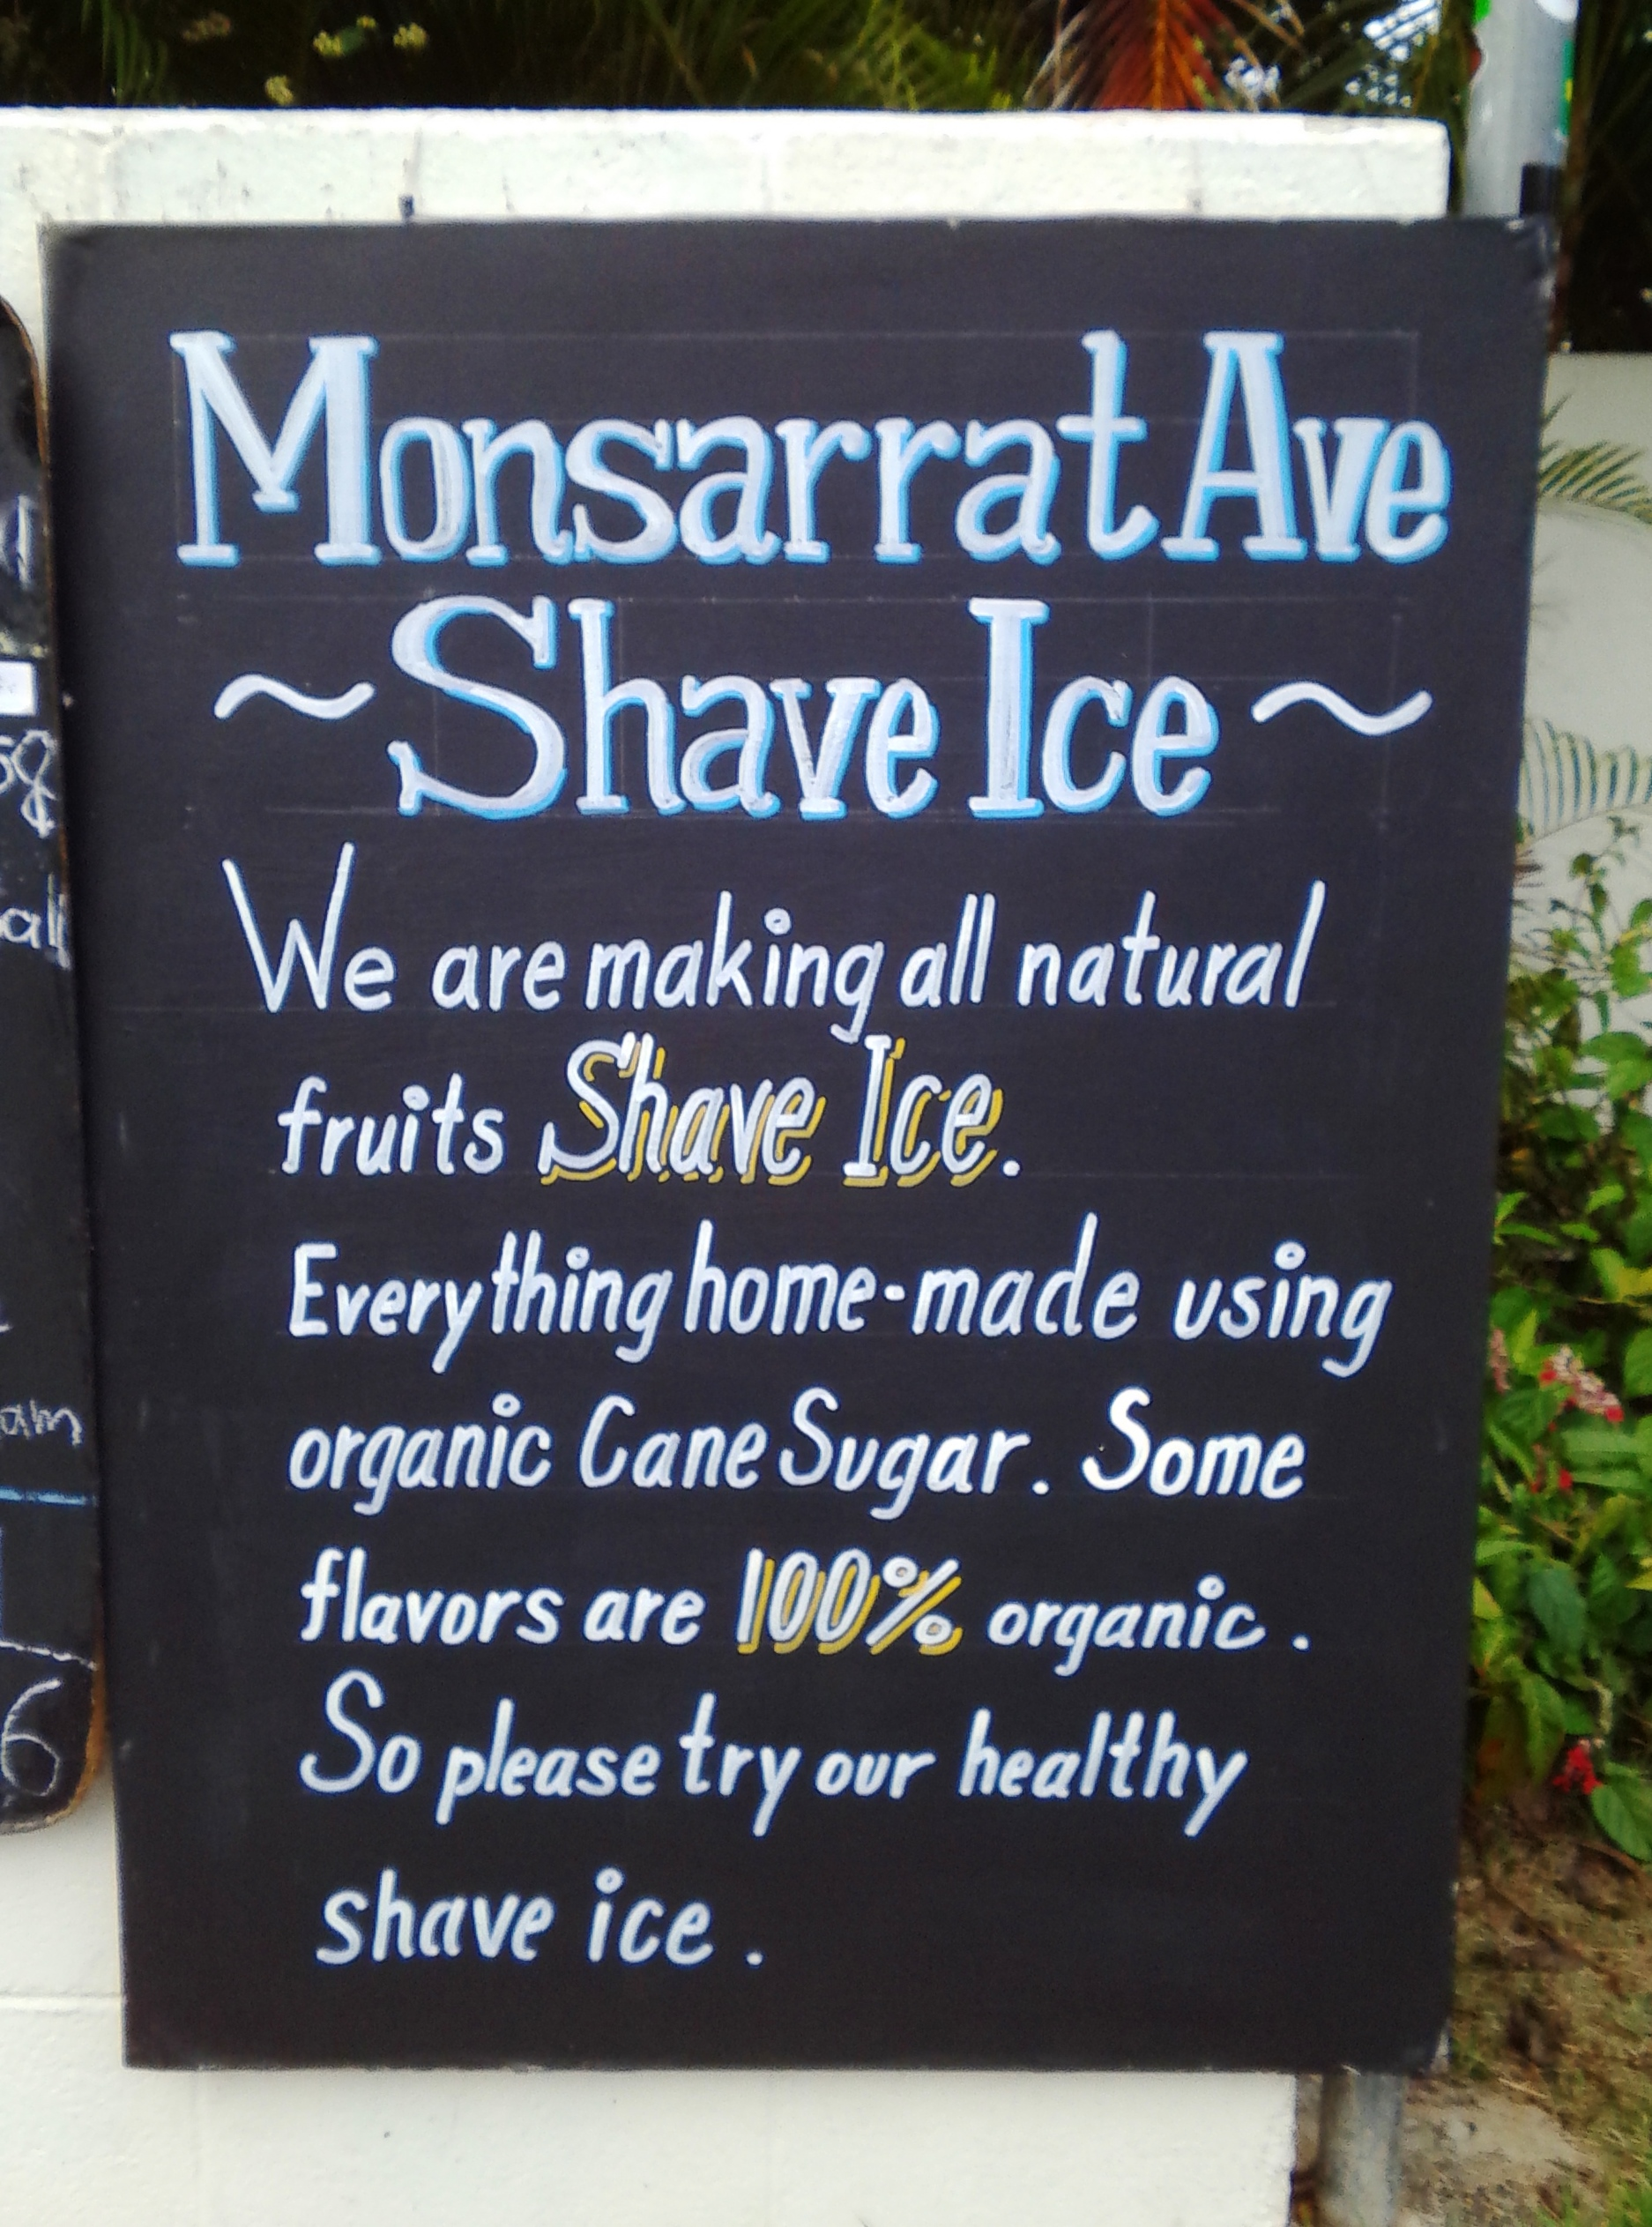 Monsarrat Ave. Shave Ice